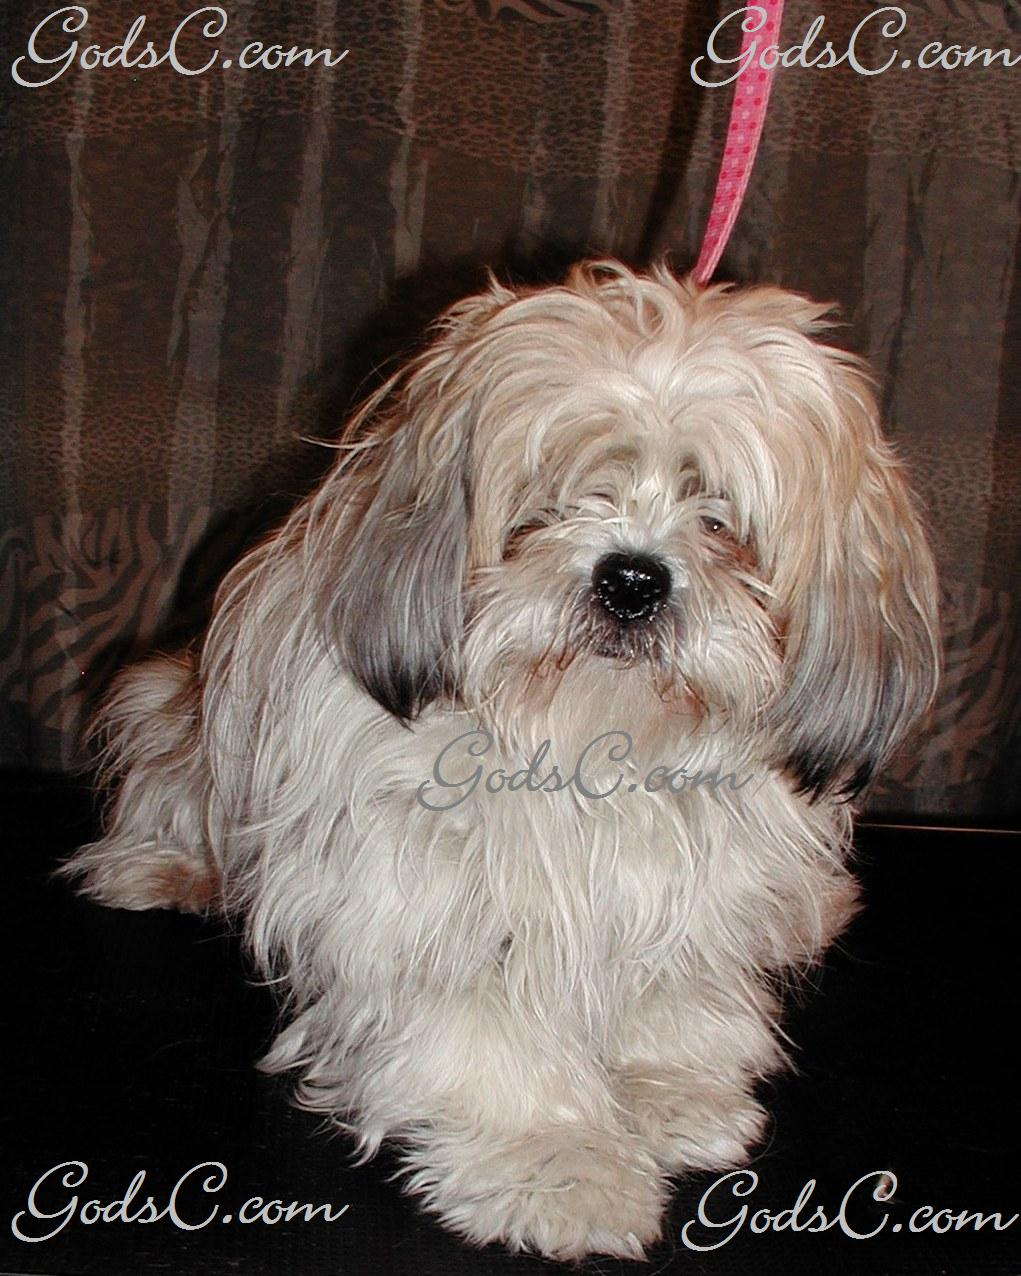 The Shih Tzu is a classic little dog with a broad face, large eyes, sturdy build and coming in at about nine inches in height, total. They span the entire range of colors from black to white.